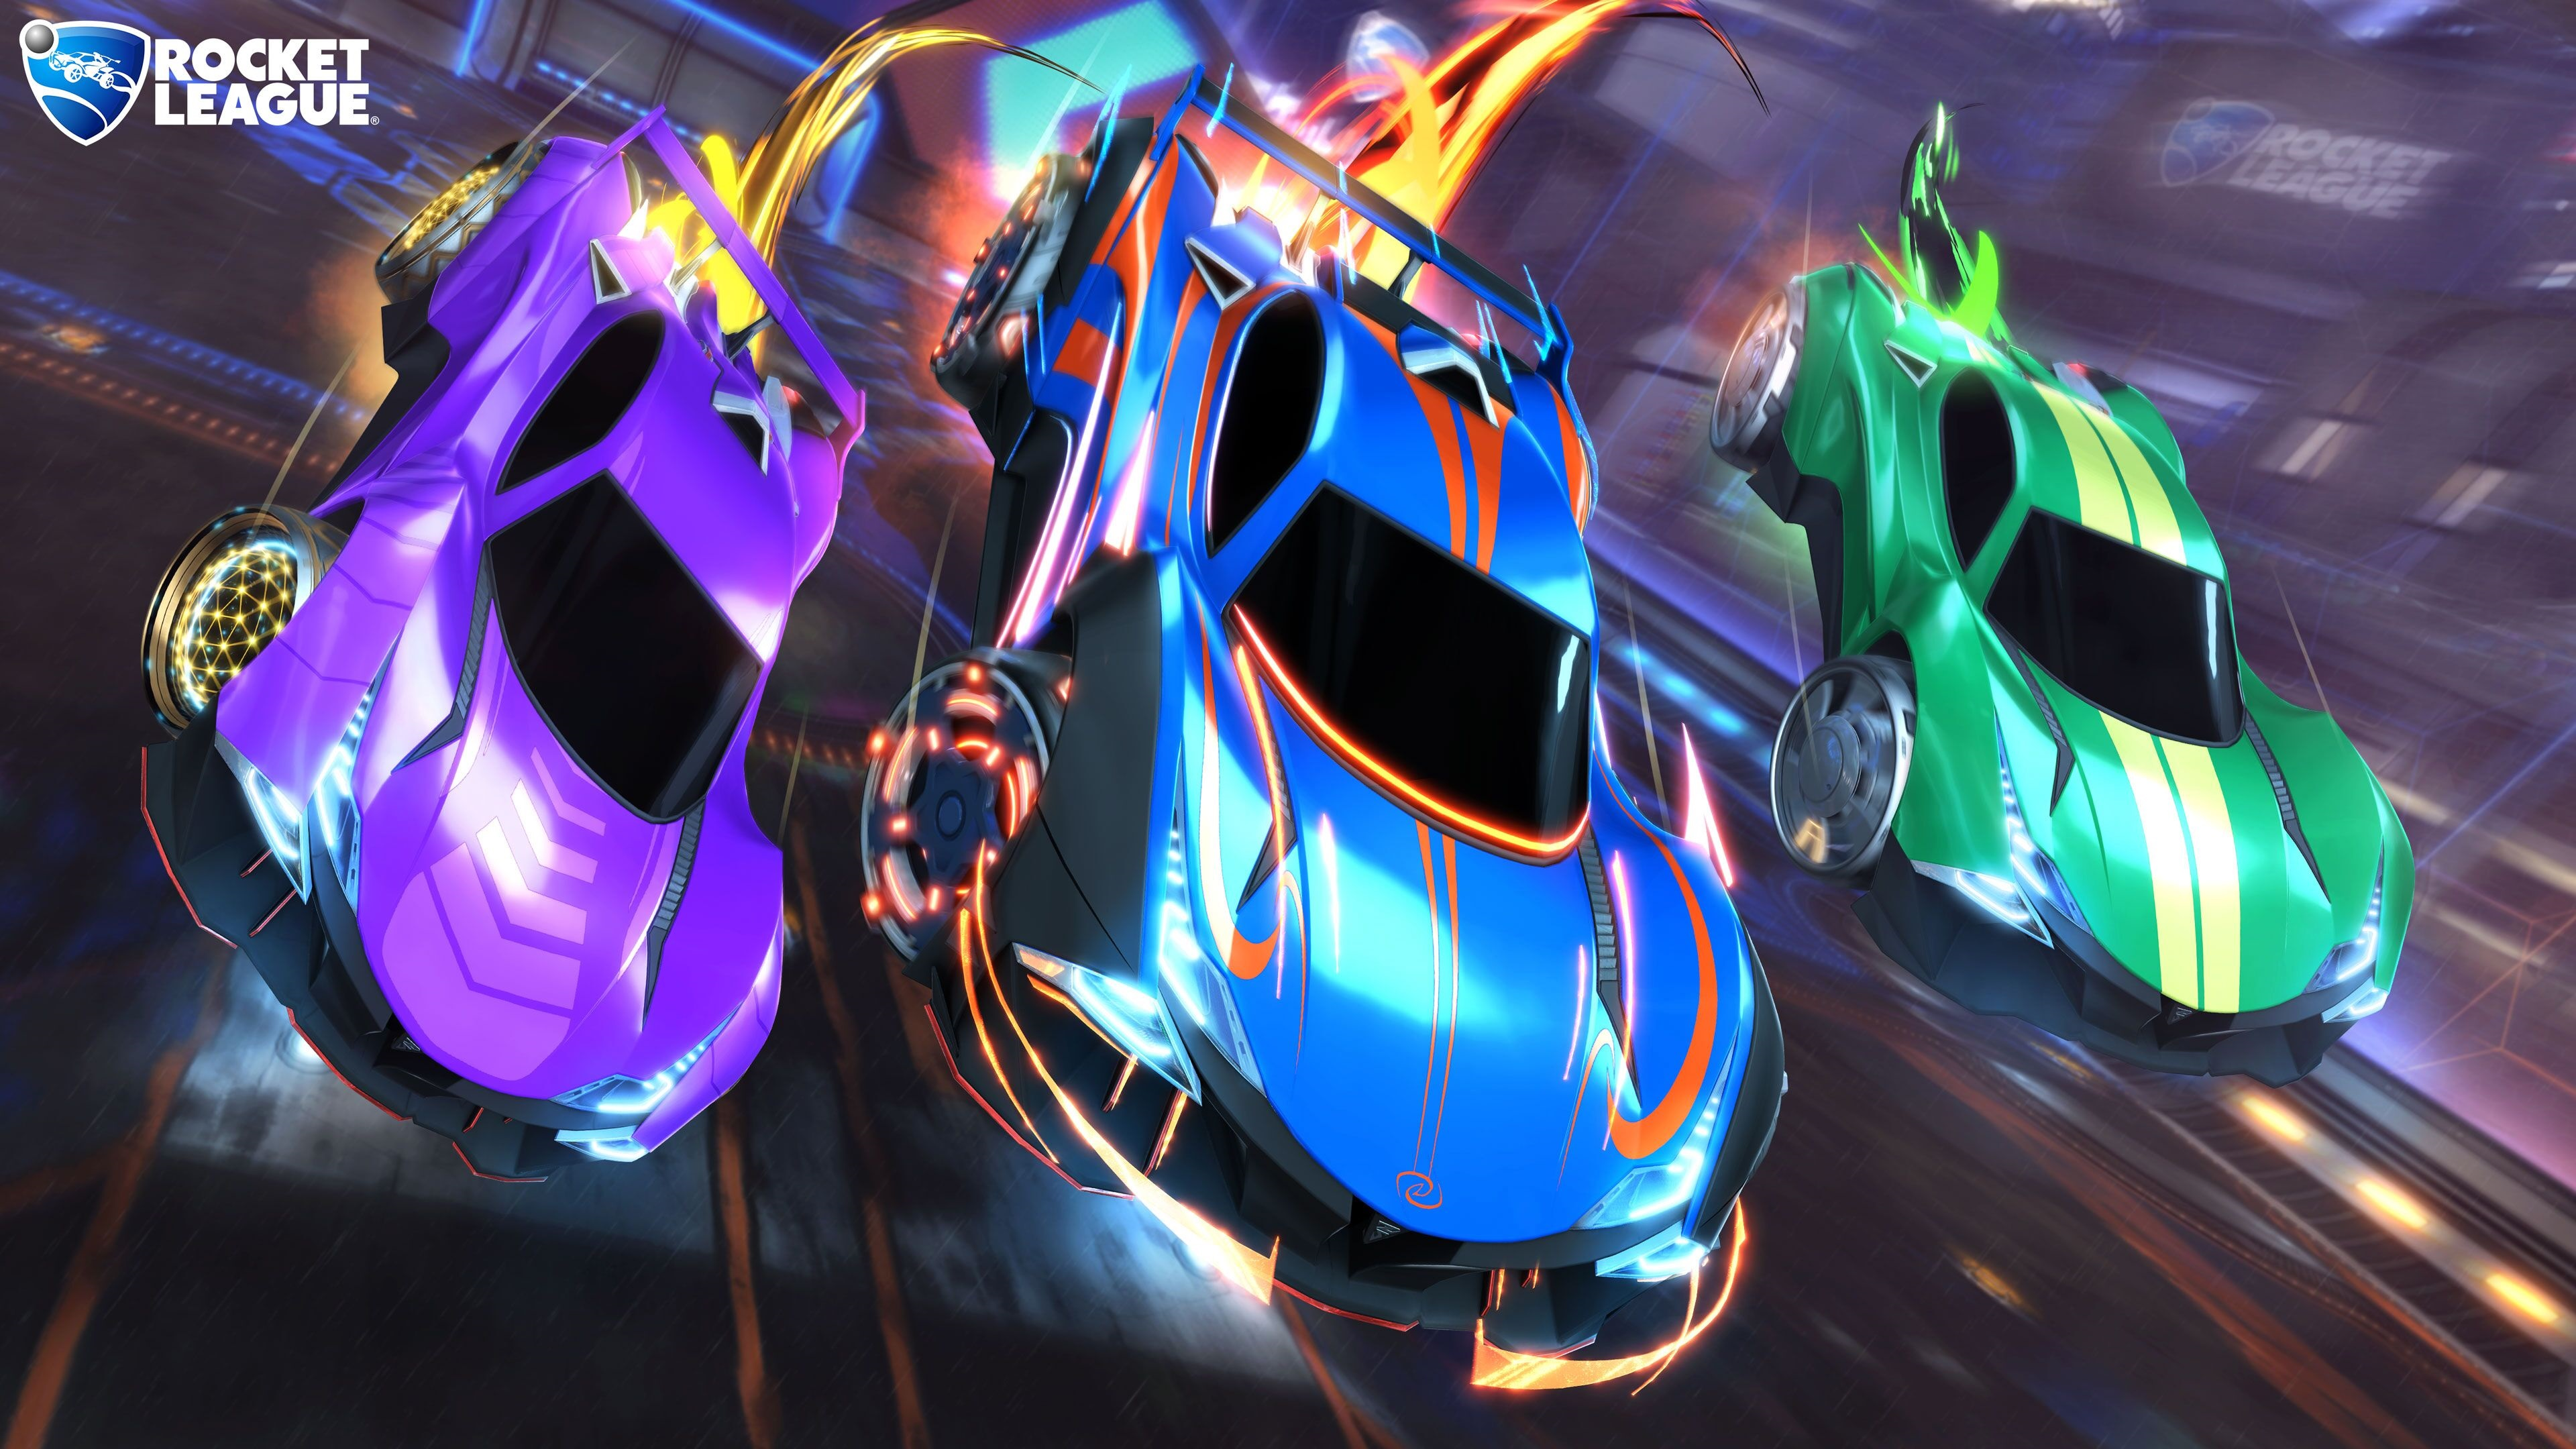 Rocket League has Challenges now, and they're the perfect